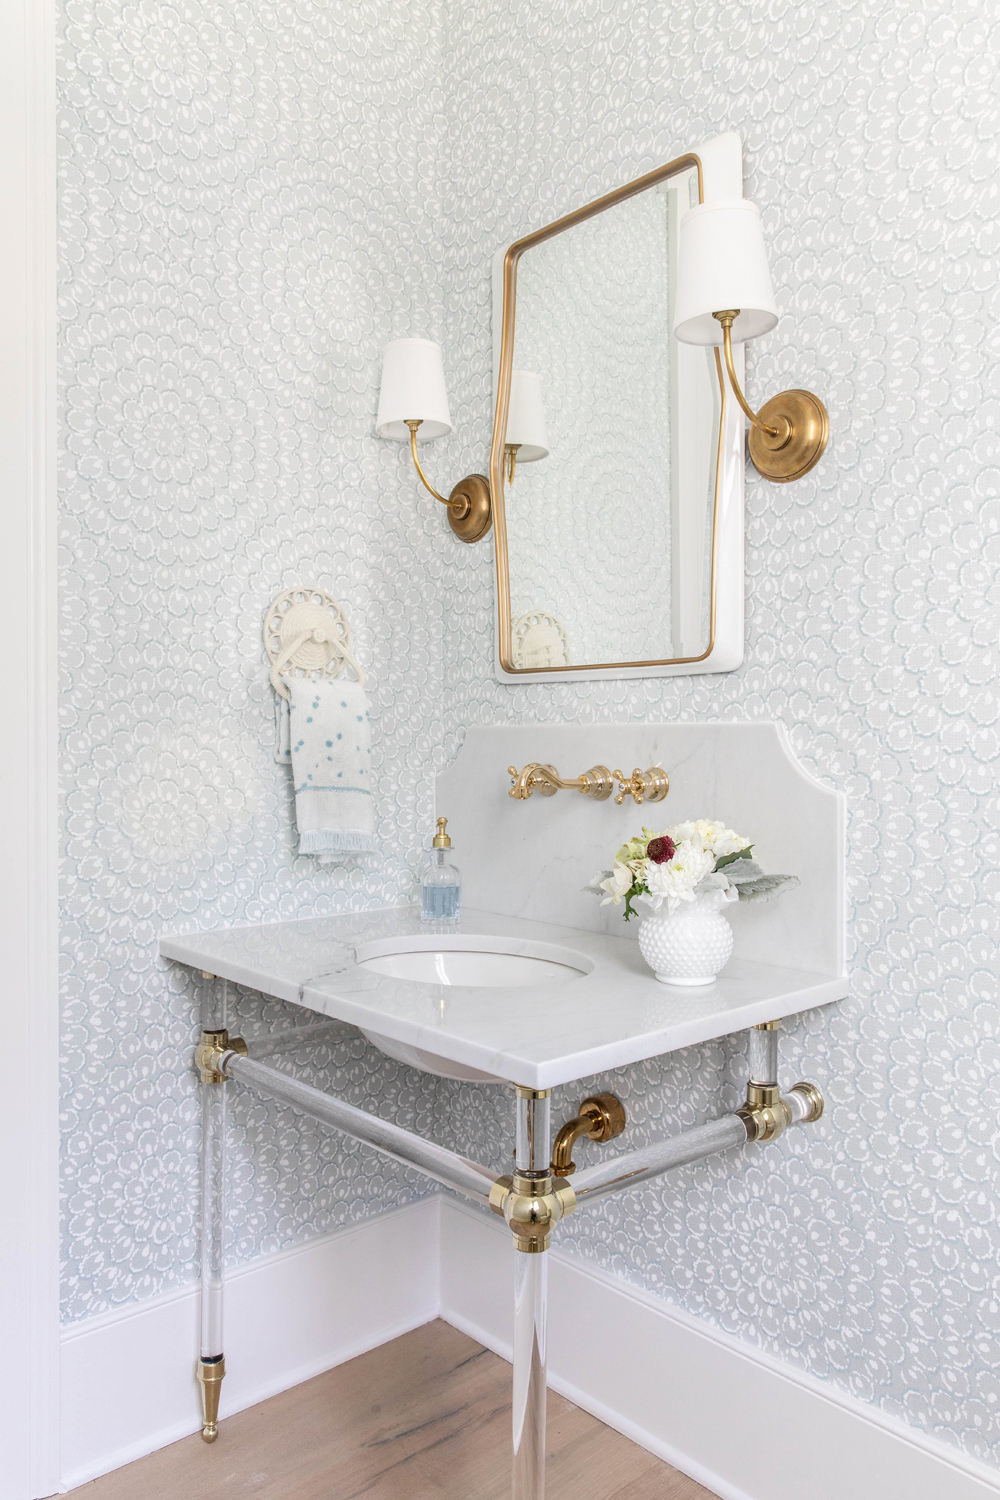 Thibaut-Wallpaper-with-Marble-Decorative-Backsplash-and-Acrylic-Brass-Sink-Legs-3